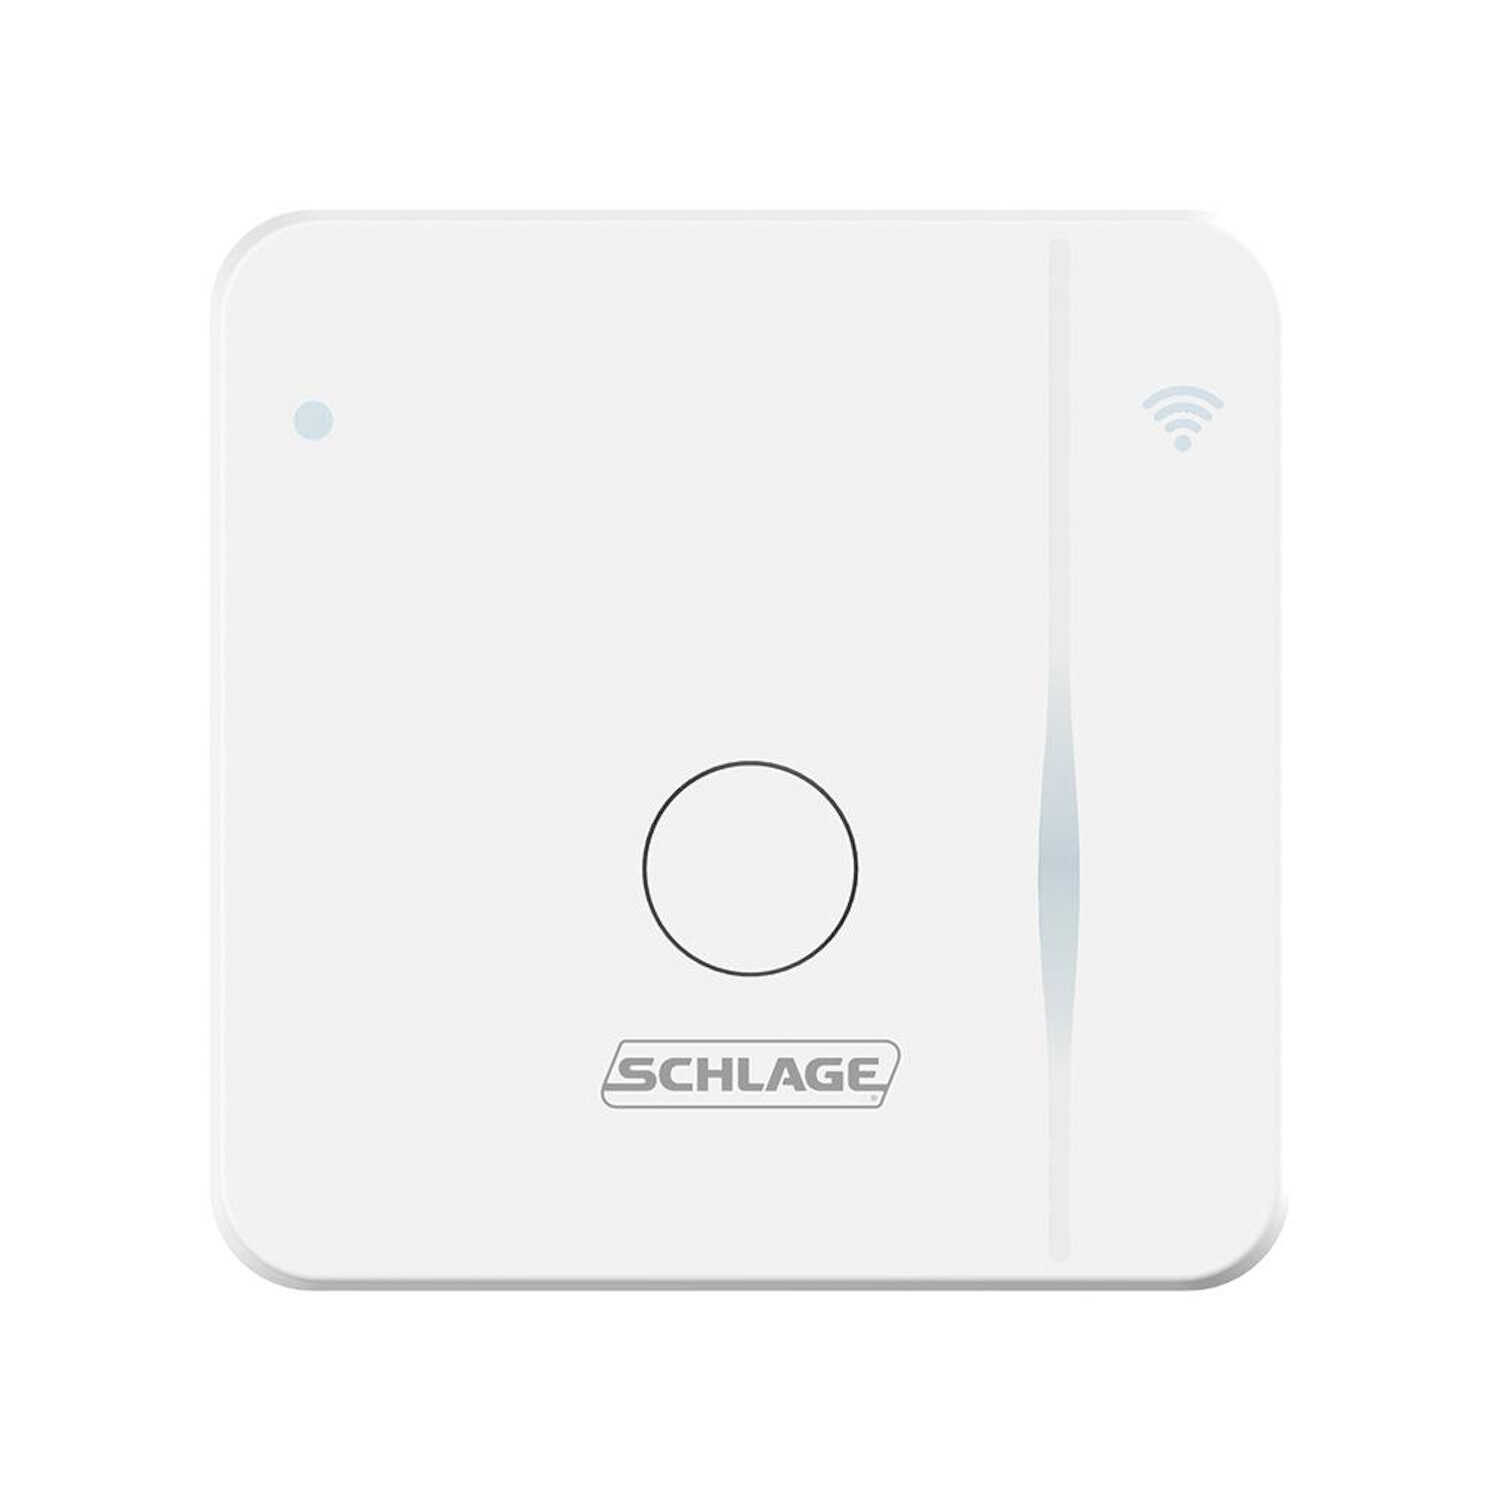 Schlage  Sense  Plastic  WiFi Adapter  1 each